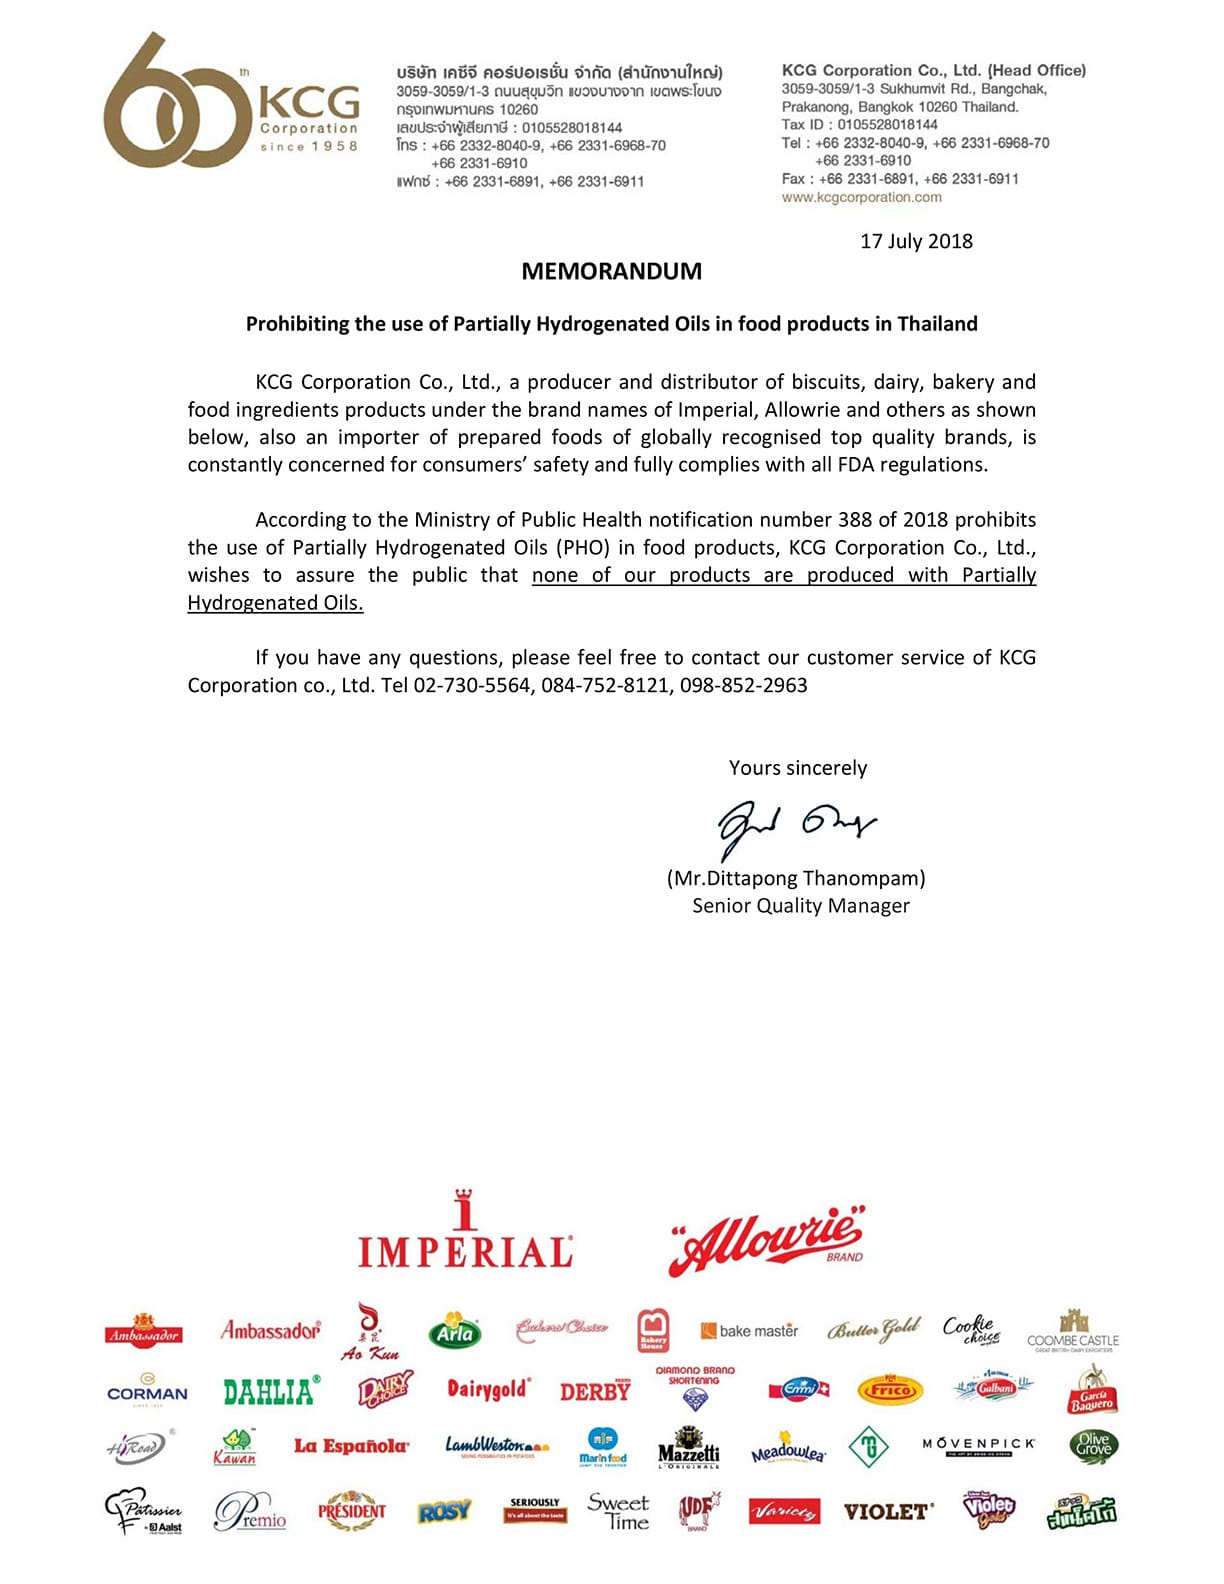 MEMORANDUM Prohibiting the use of Partially Hydrogenated Oils in